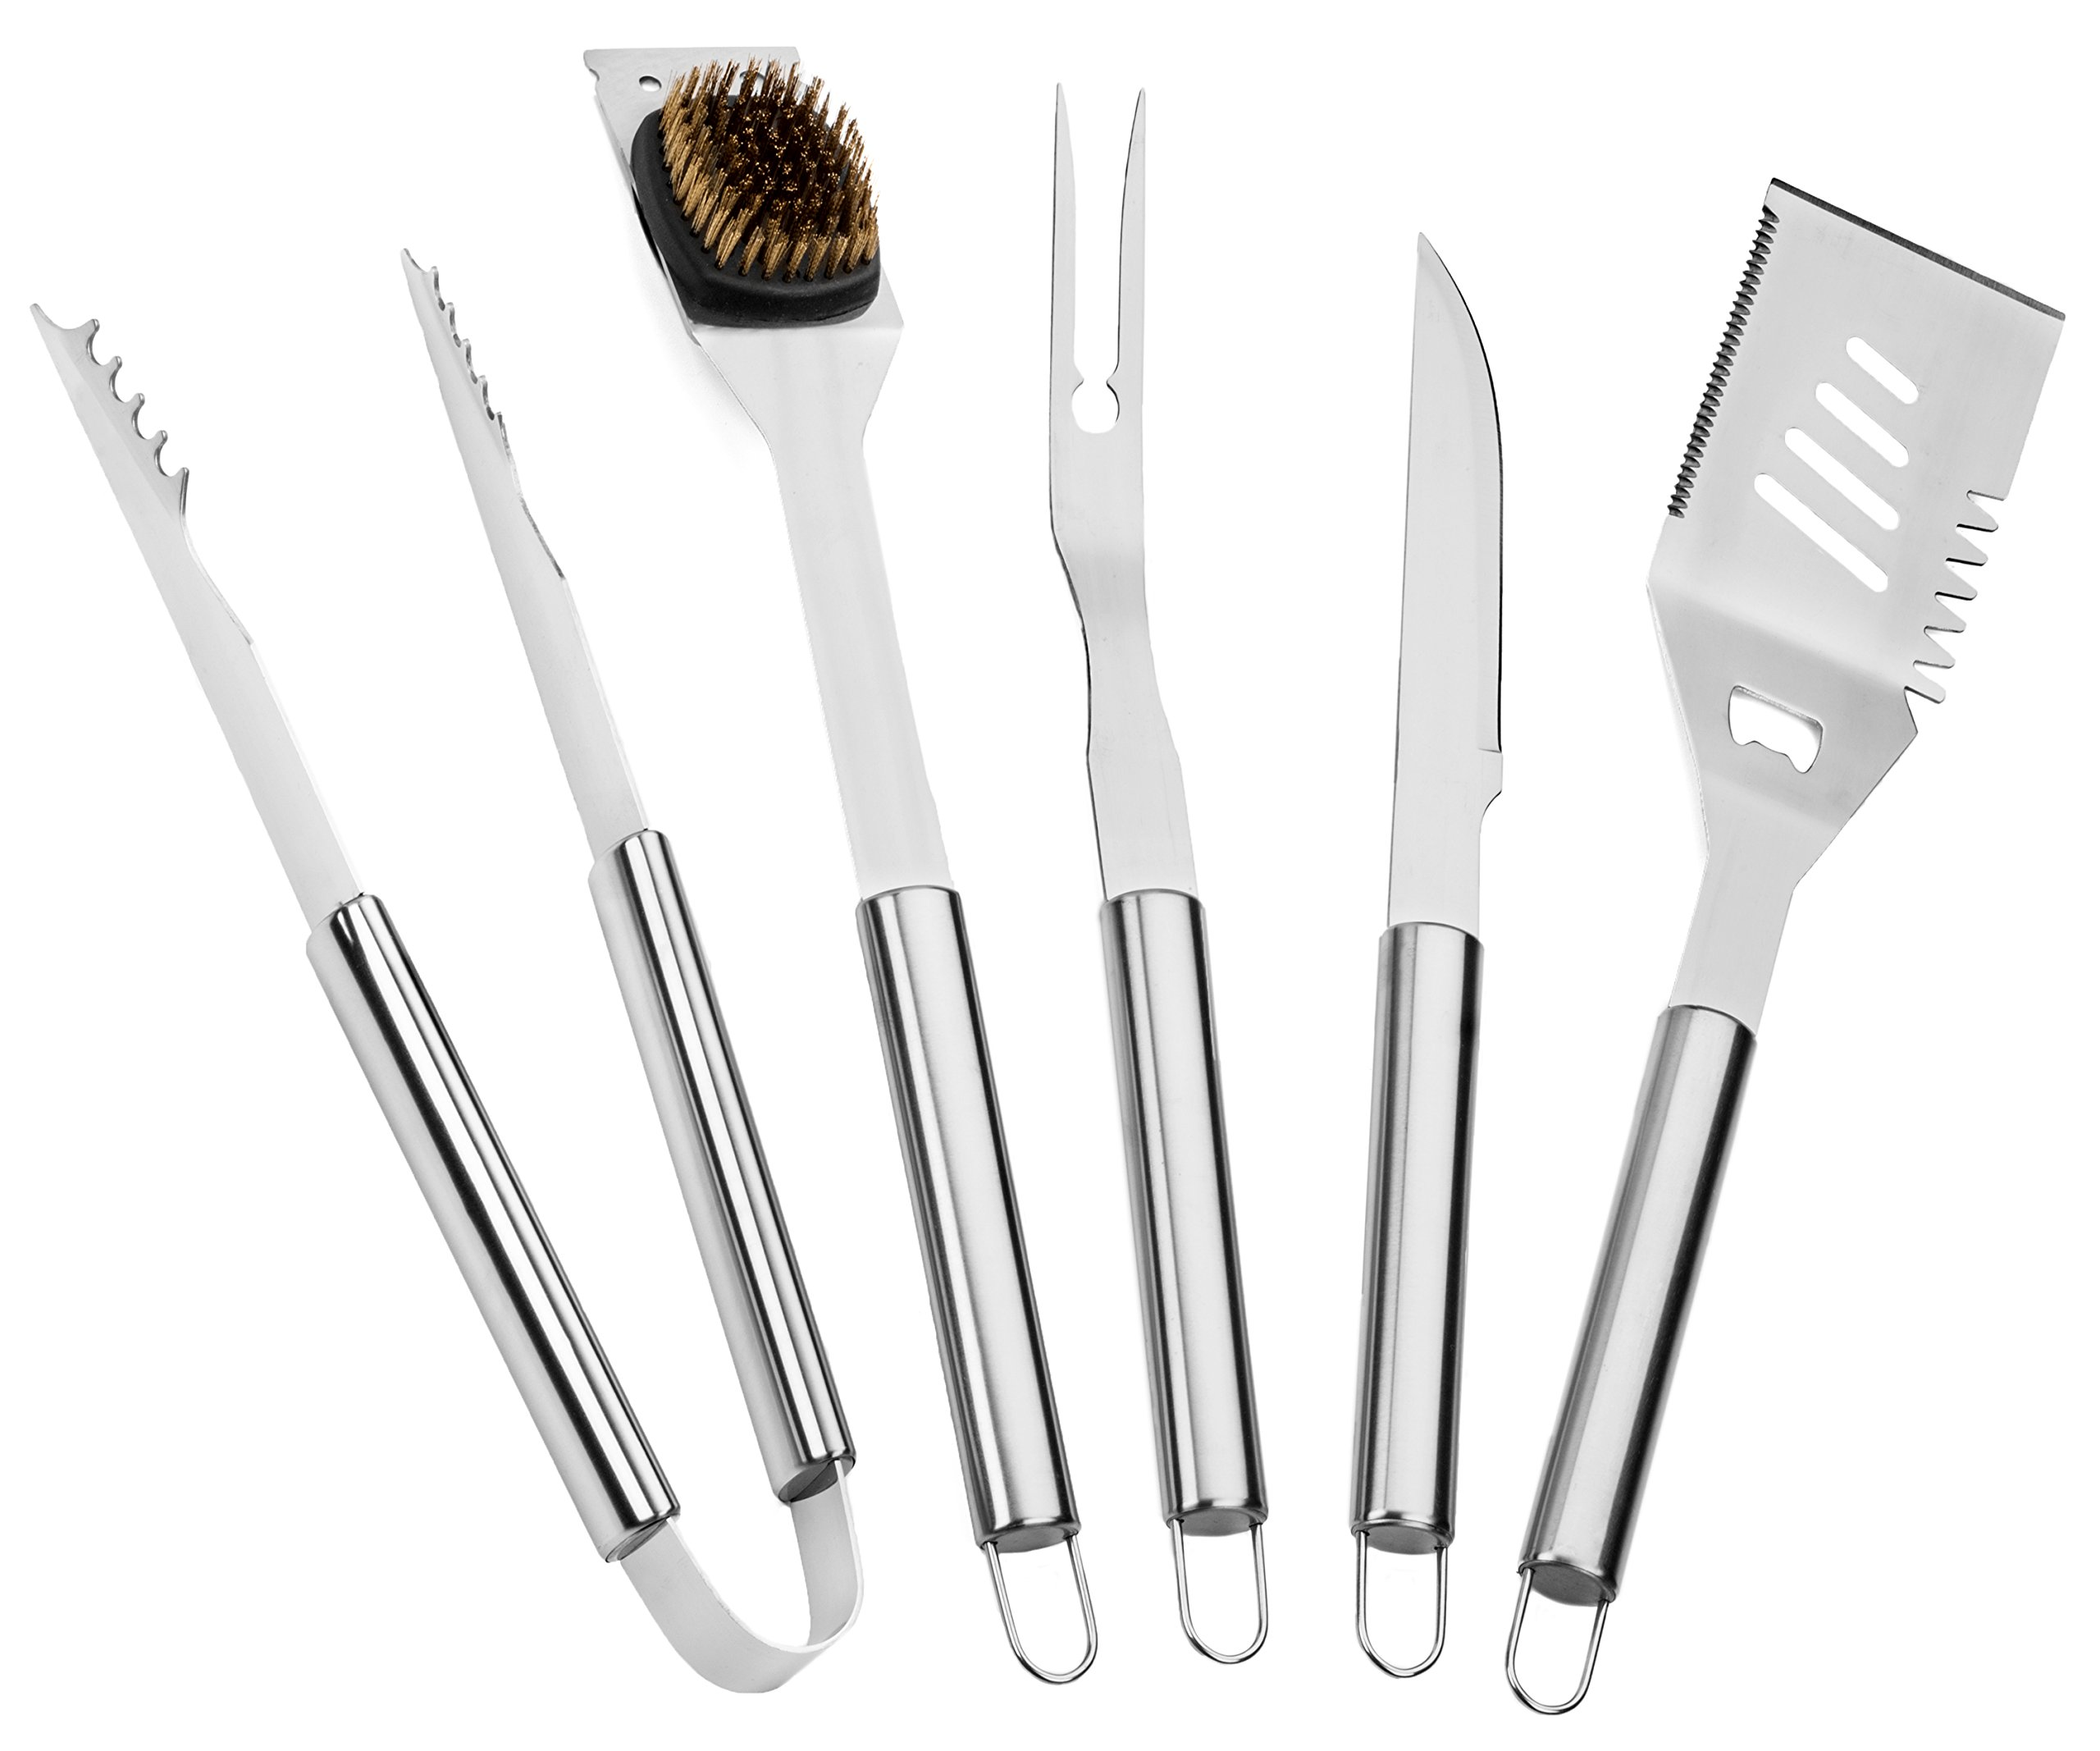 Elite BBQ Grill Tools Set - Stainless Steel Grilling Tools - BBQ Accessories - 5 Piece Barbecue Tool Gift Set w/ BBQ Spatula, Tongs, Knife, Fork, Cleaning Brush - BBQ Set - Barbeque Grill Accessories